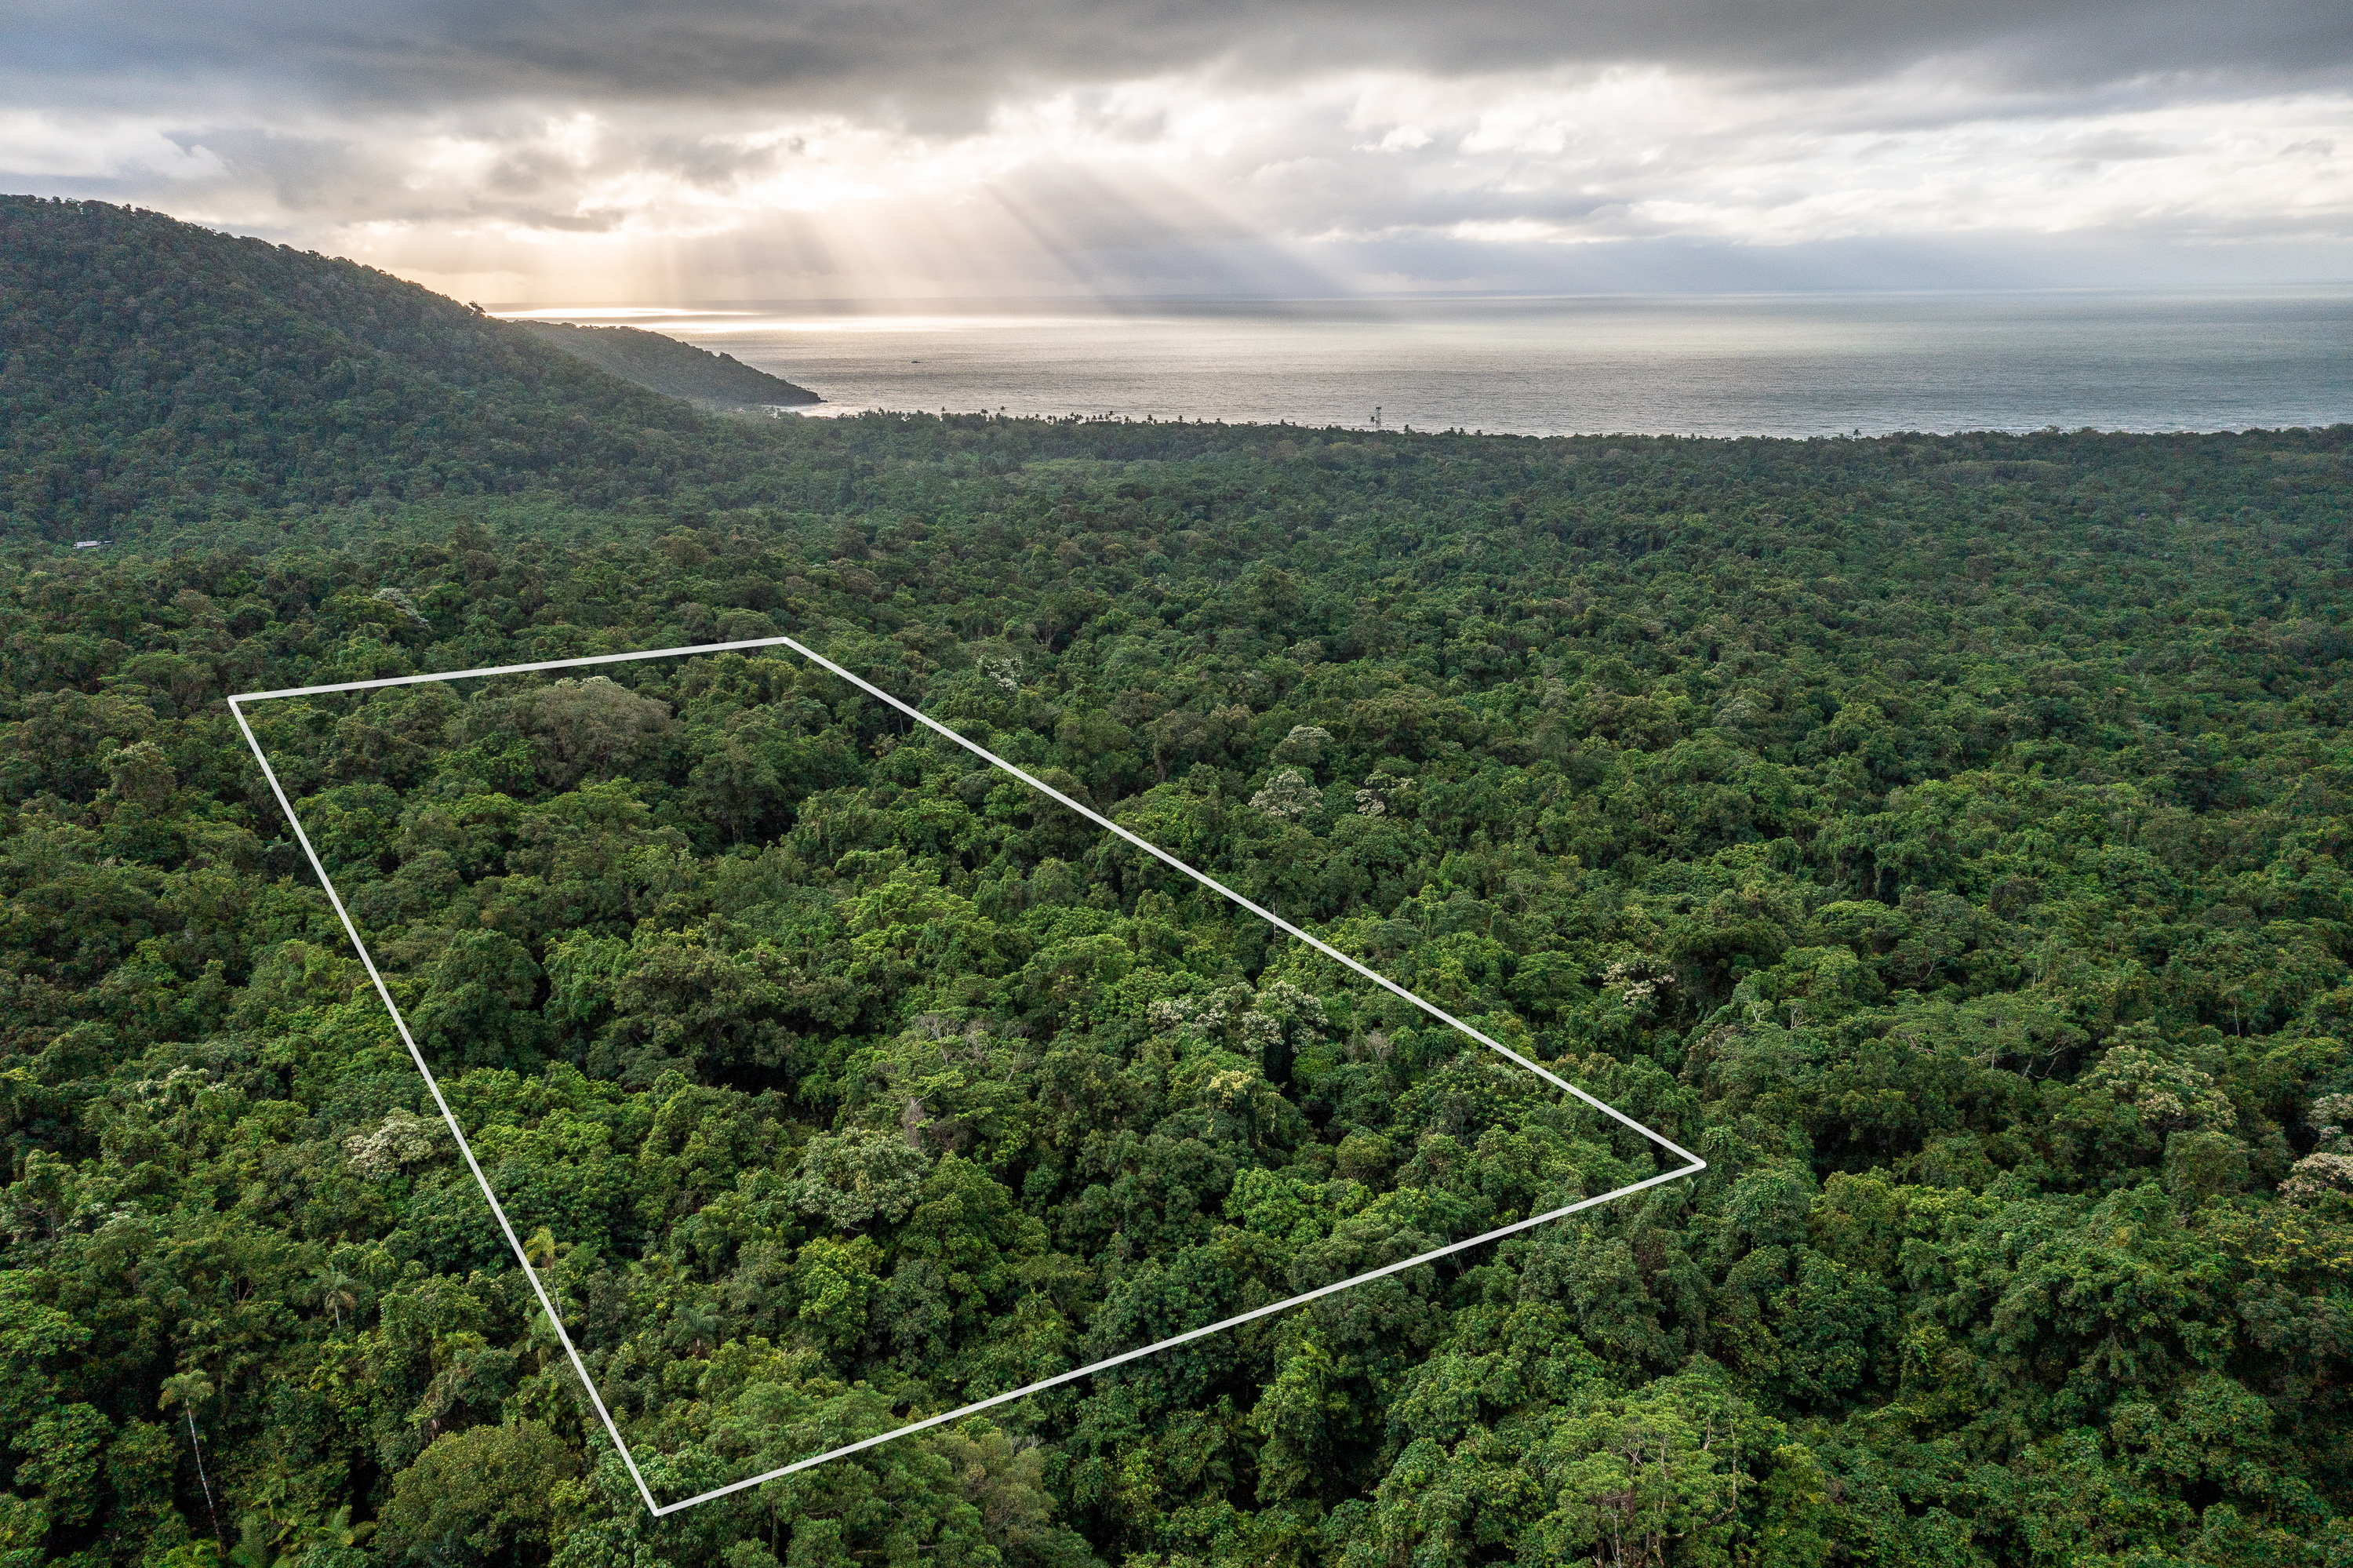 Lot 21 Camelot Close in the Daintree Lowland Rainforest